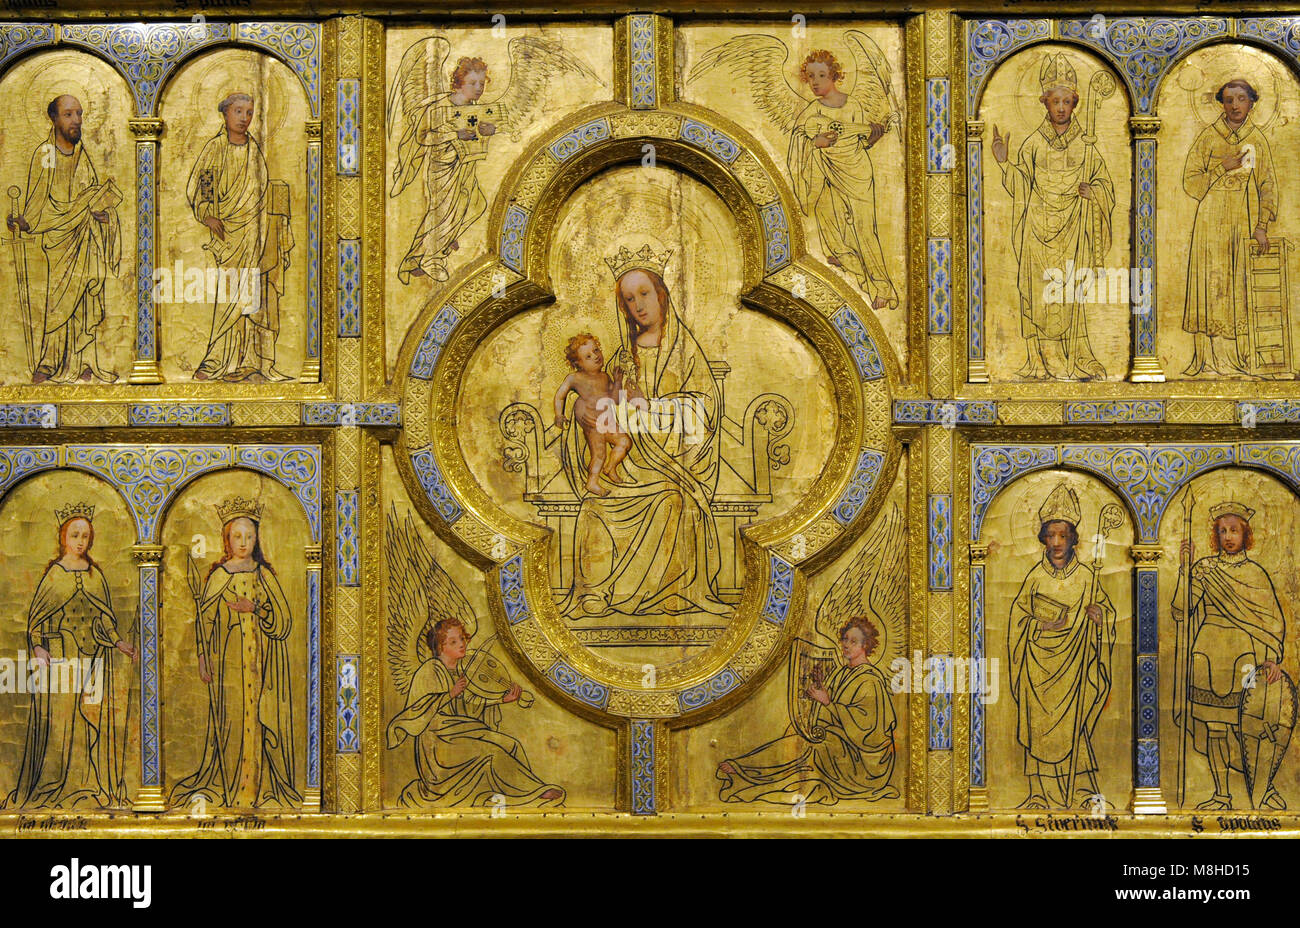 Golden panel from st. Ursula, detail. Cologne, c. 1170. Painting: 15th century and 1844. Oak, gilt copper, cast - Stock Image